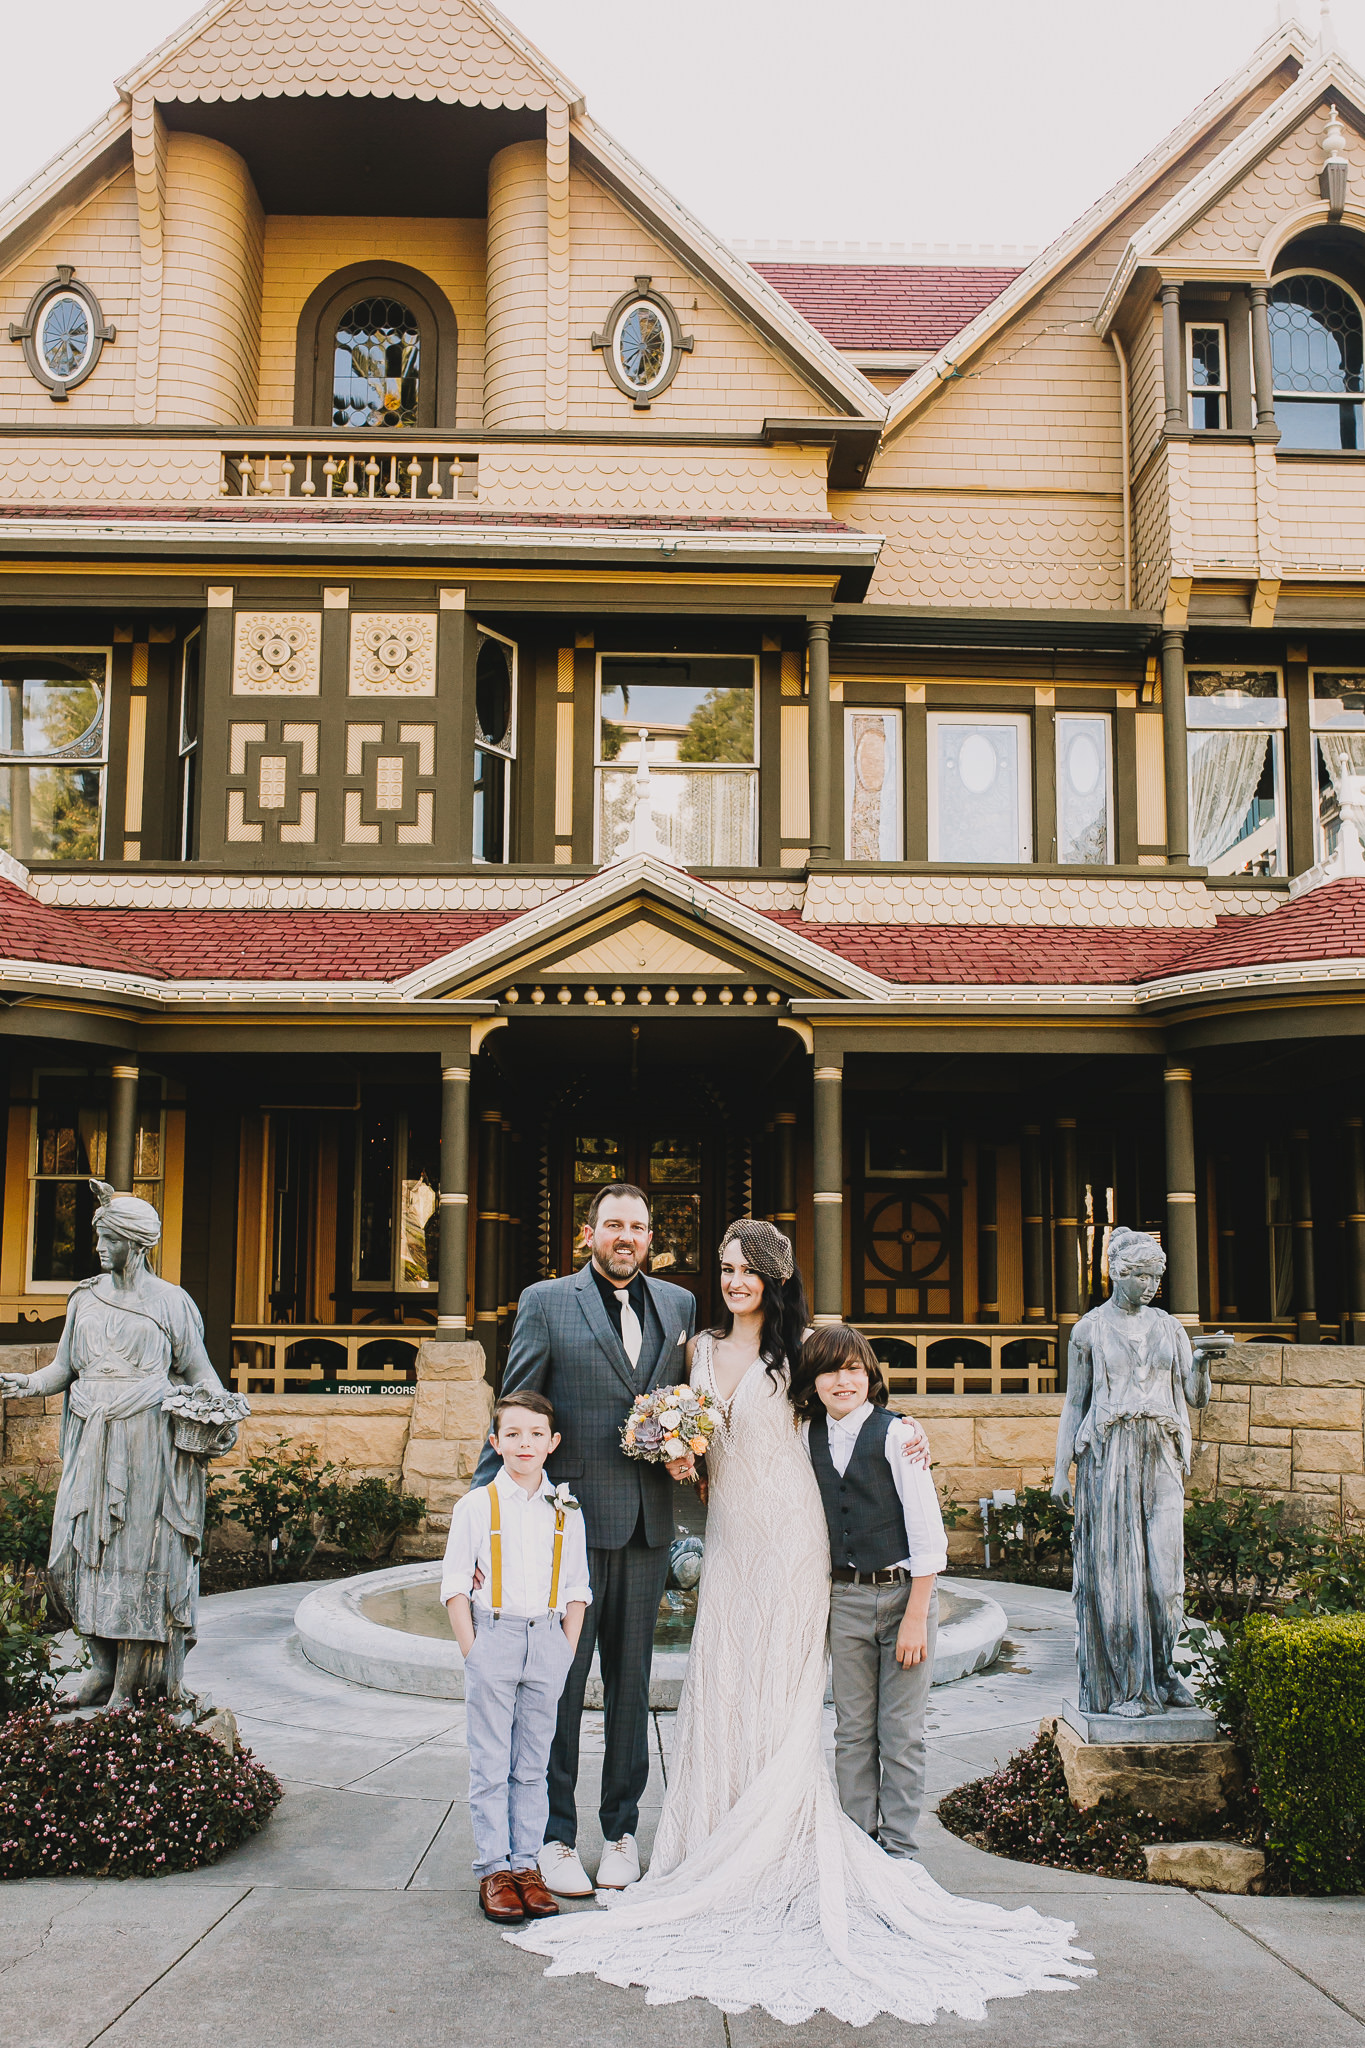 Archer Inspired Photography Sara and Aaron Winchester Mystery House NorCal San Jose California Wedding Photographer-243.jpg